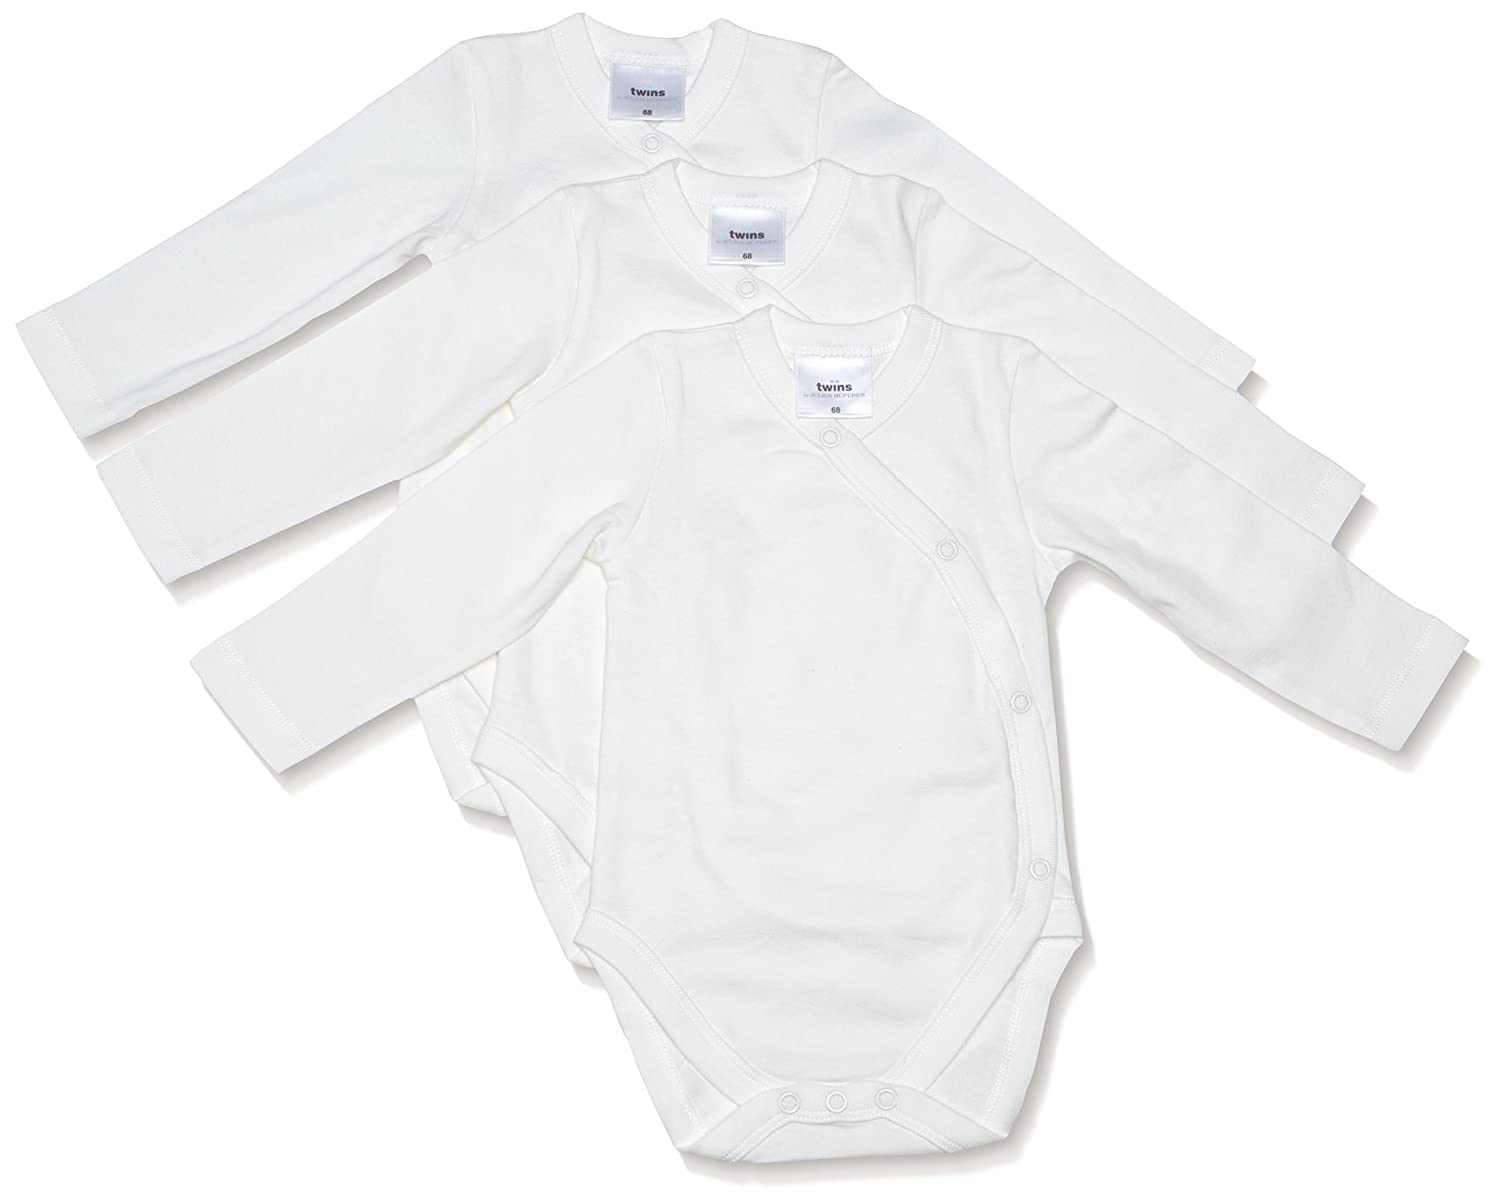 Twins Unisex Baby Organic Cotton Wrap-Around Bodysuit, Longsleeve, 3-Pack Julius Hüpeden GmbH 1 030 39